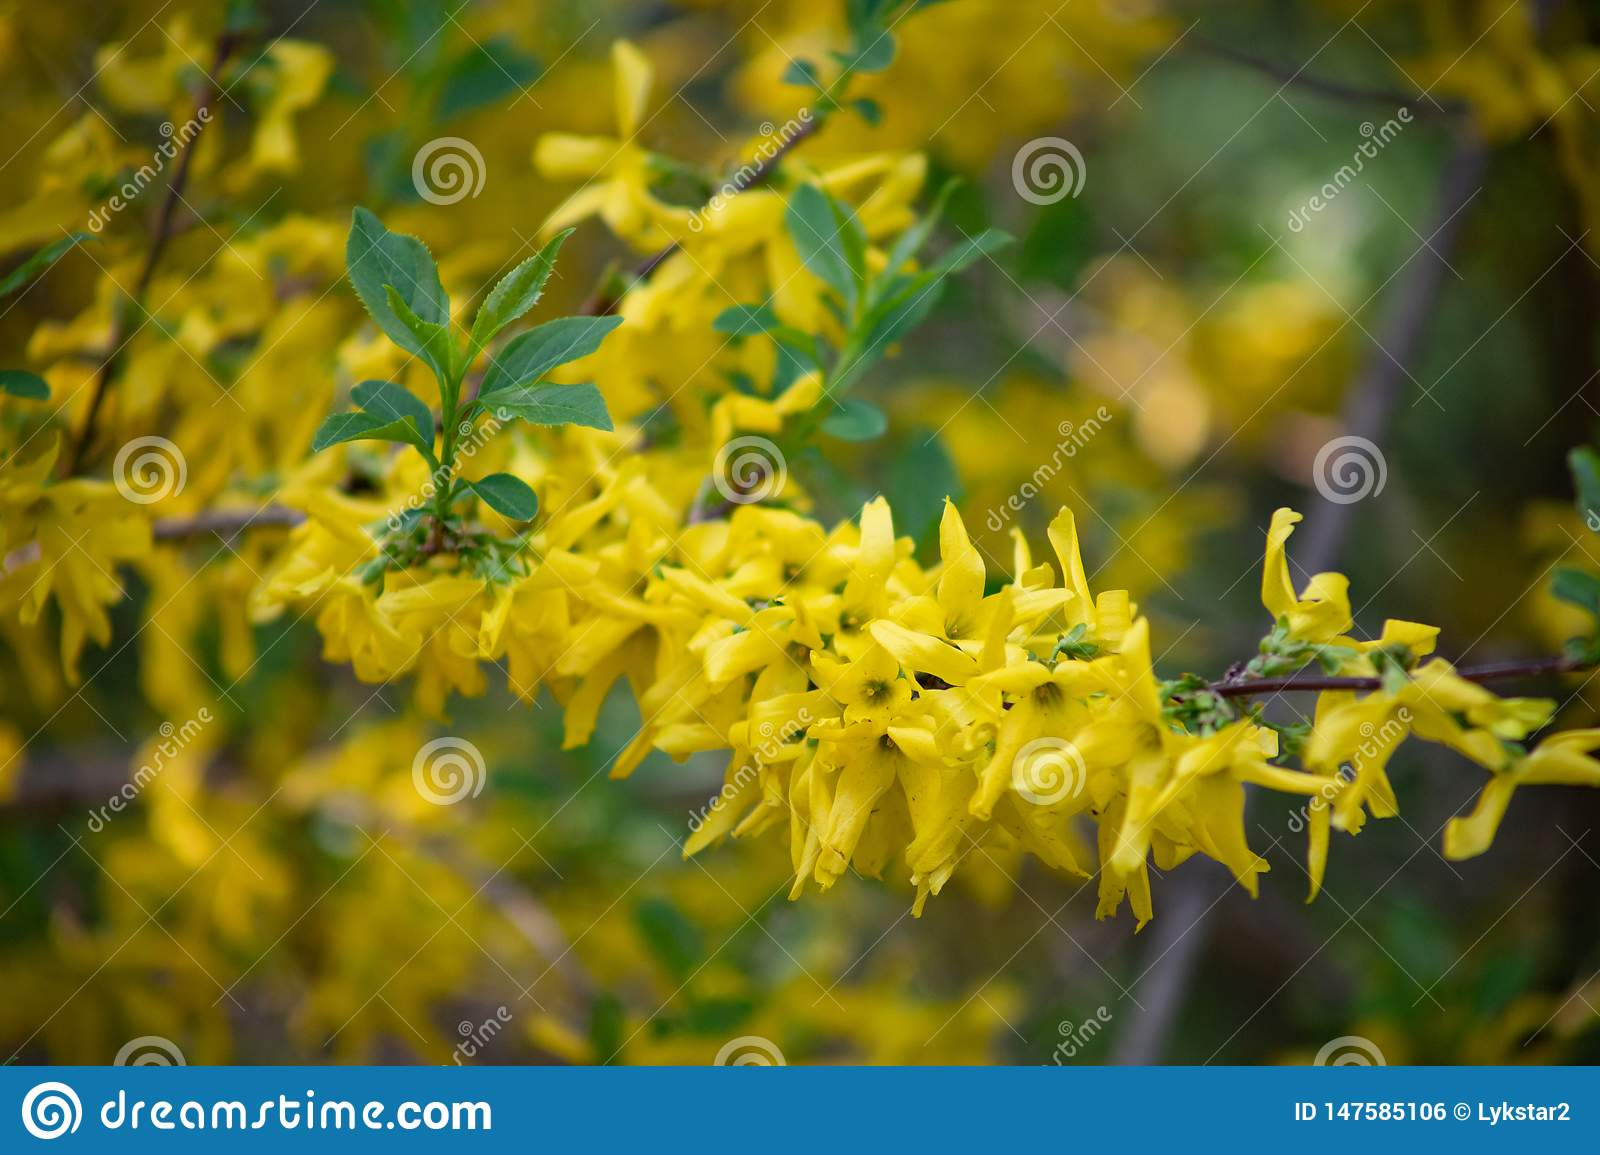 Popular in Europe shrub forsythia blooms beautiful yellow gold flowers Sunny spring day in the Park